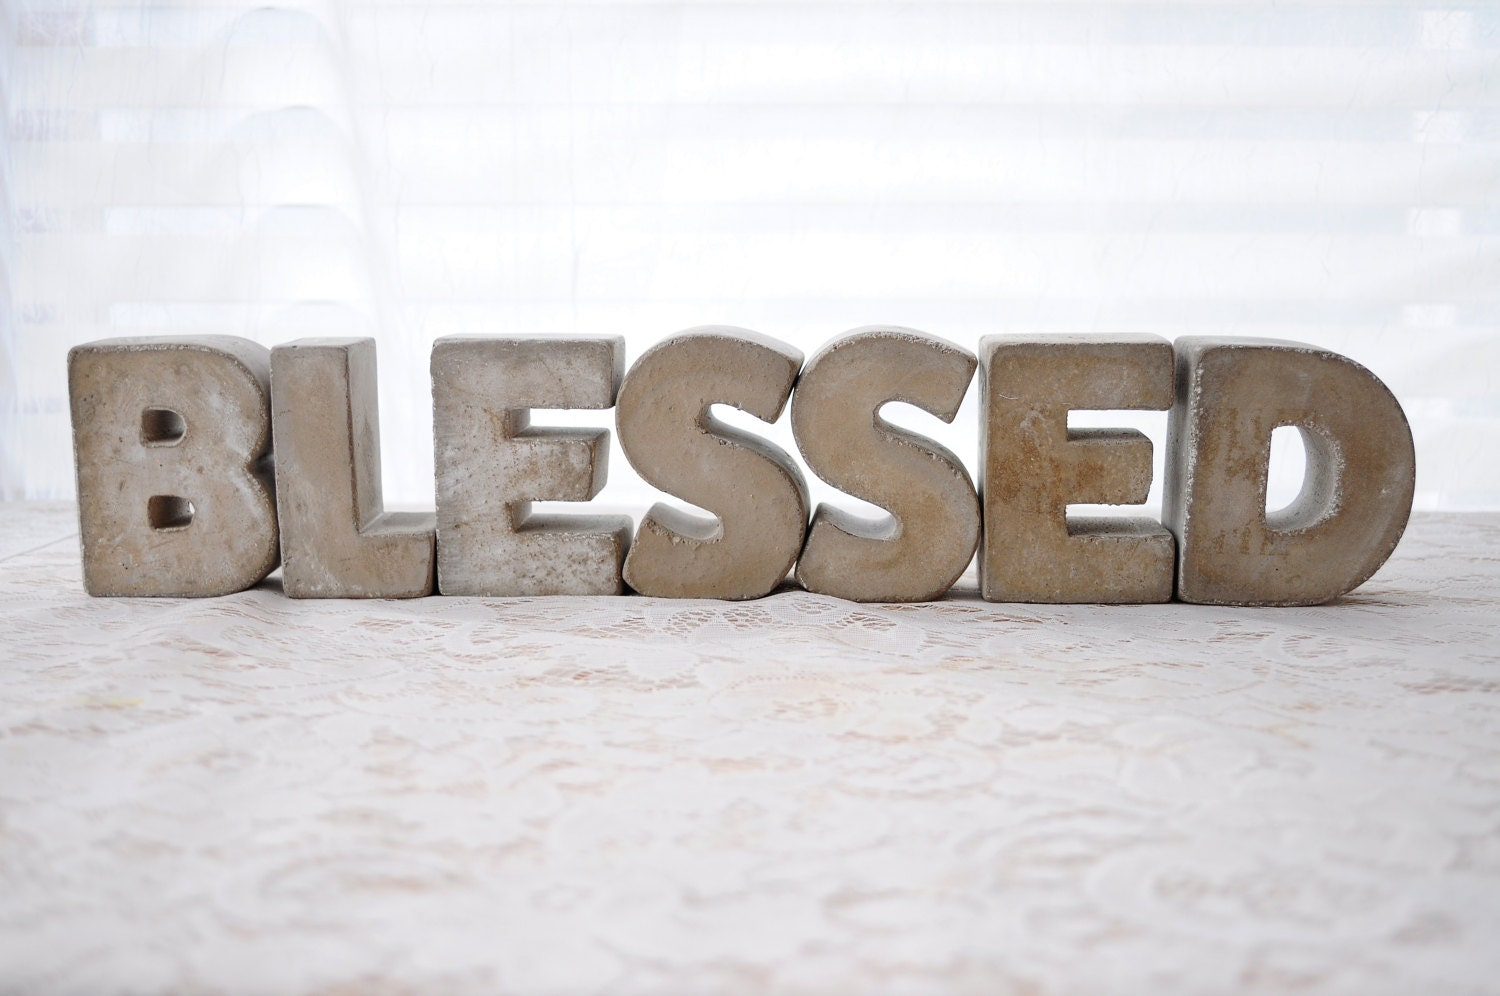 3 Concrete Letters Blessed Sign Full Word Free Standing Concrete Words Alphabet Letters Home Decor